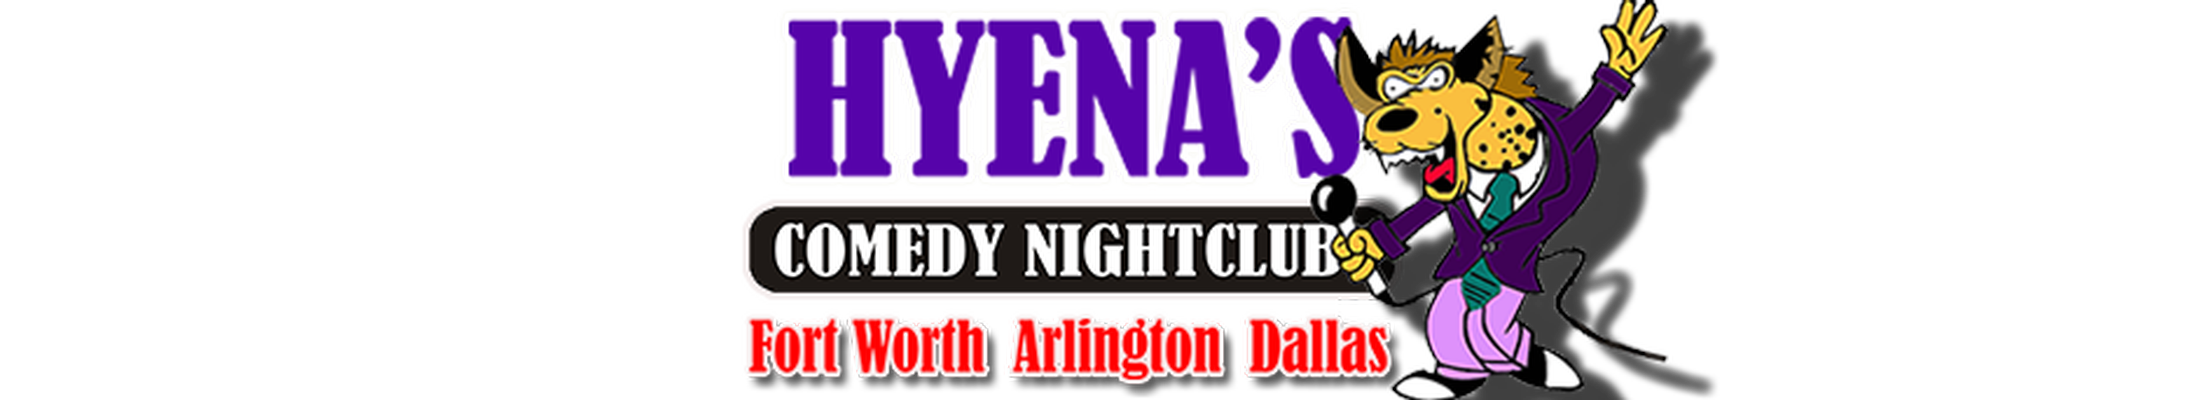 Hyena's Comedy Nightclub-Dallas